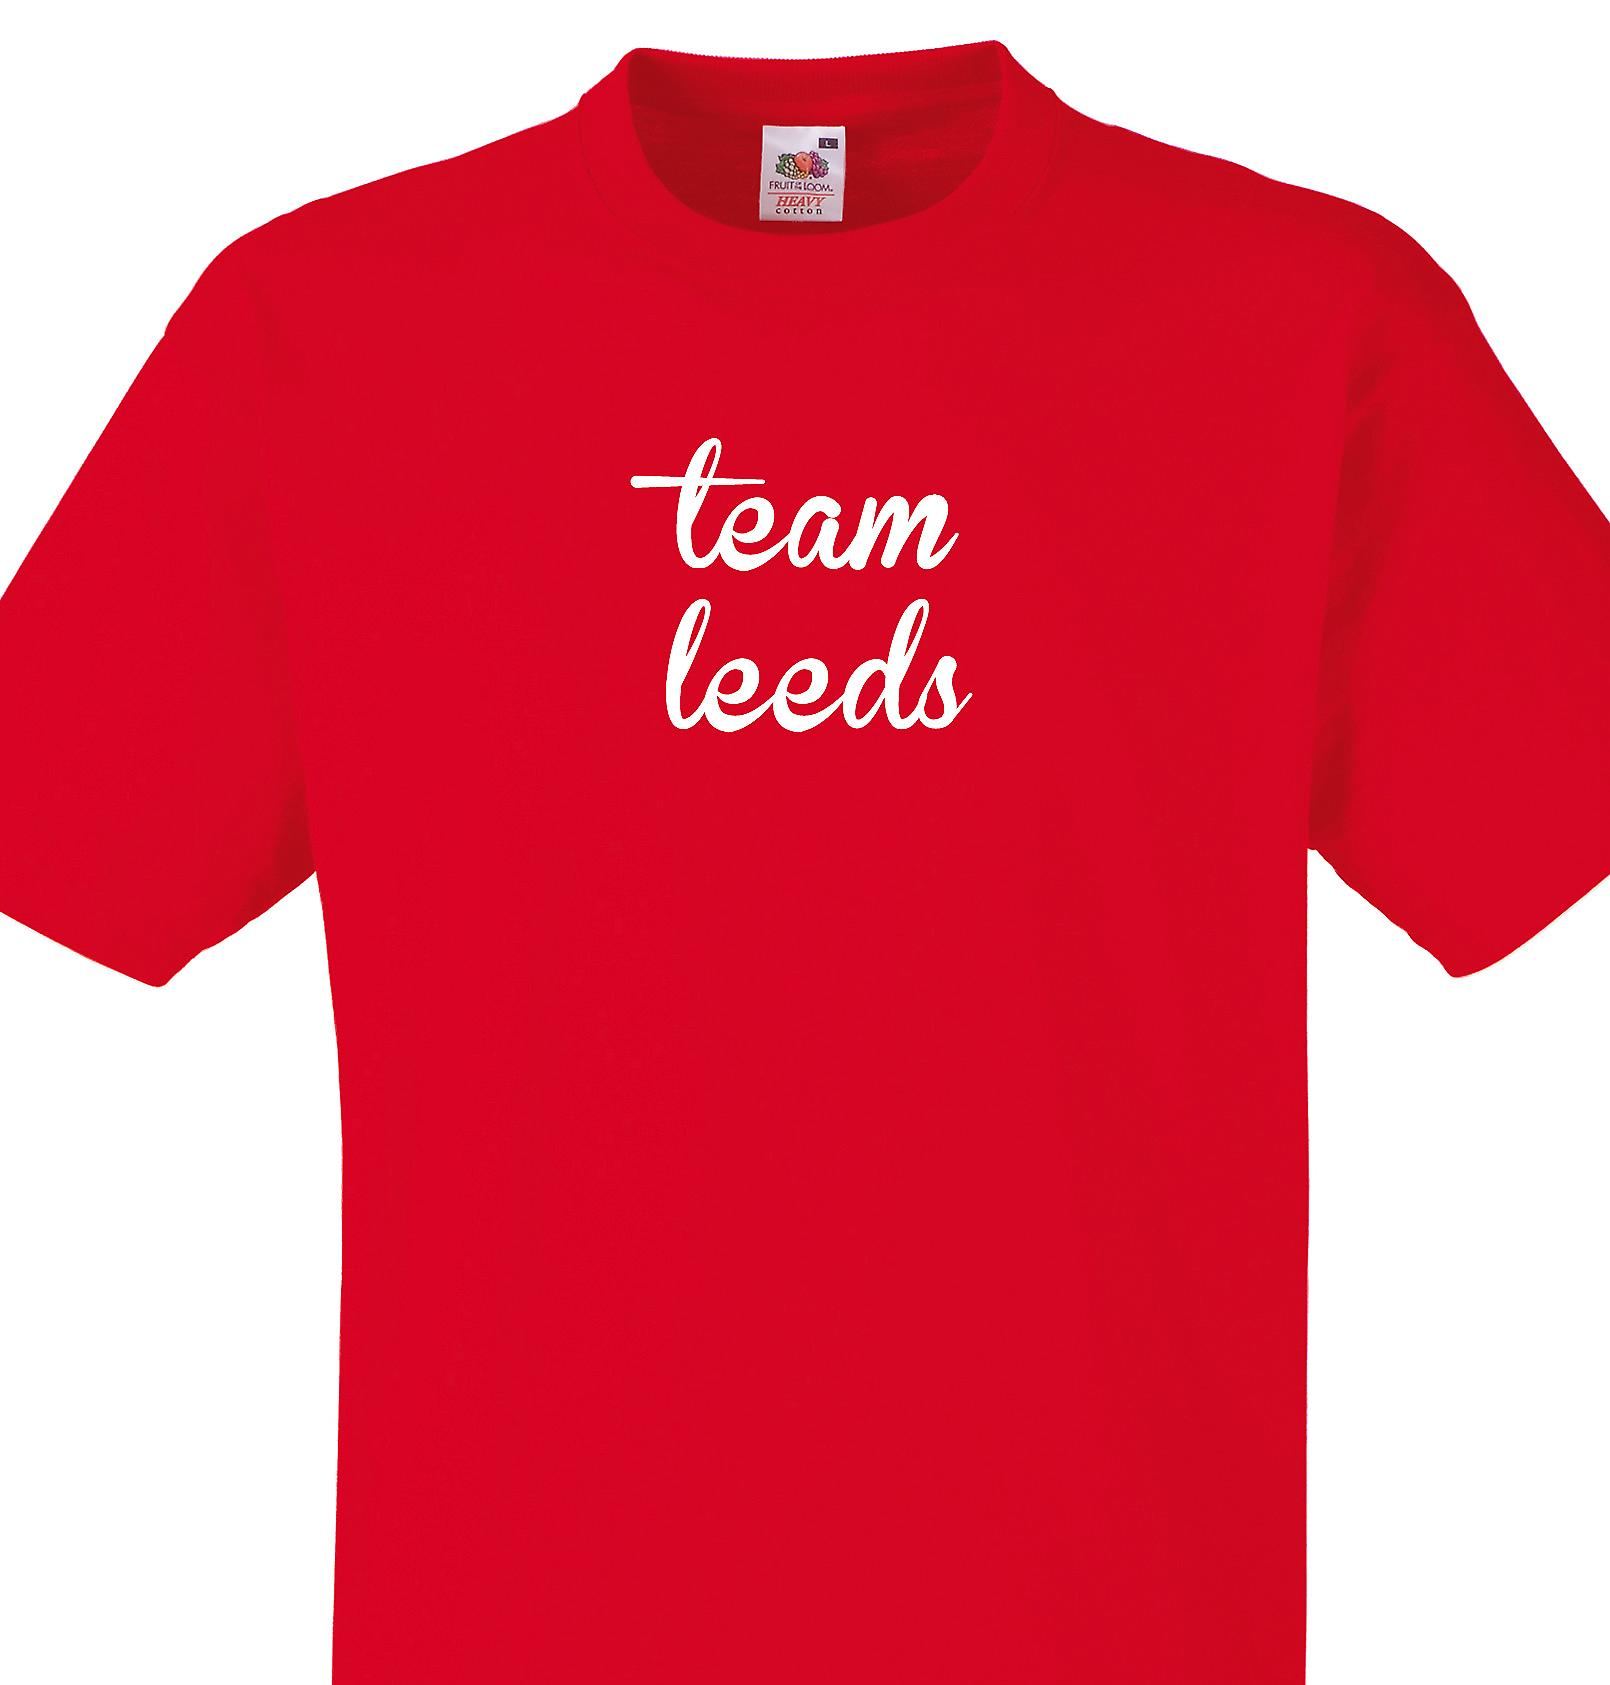 Team Leeds Red T shirt